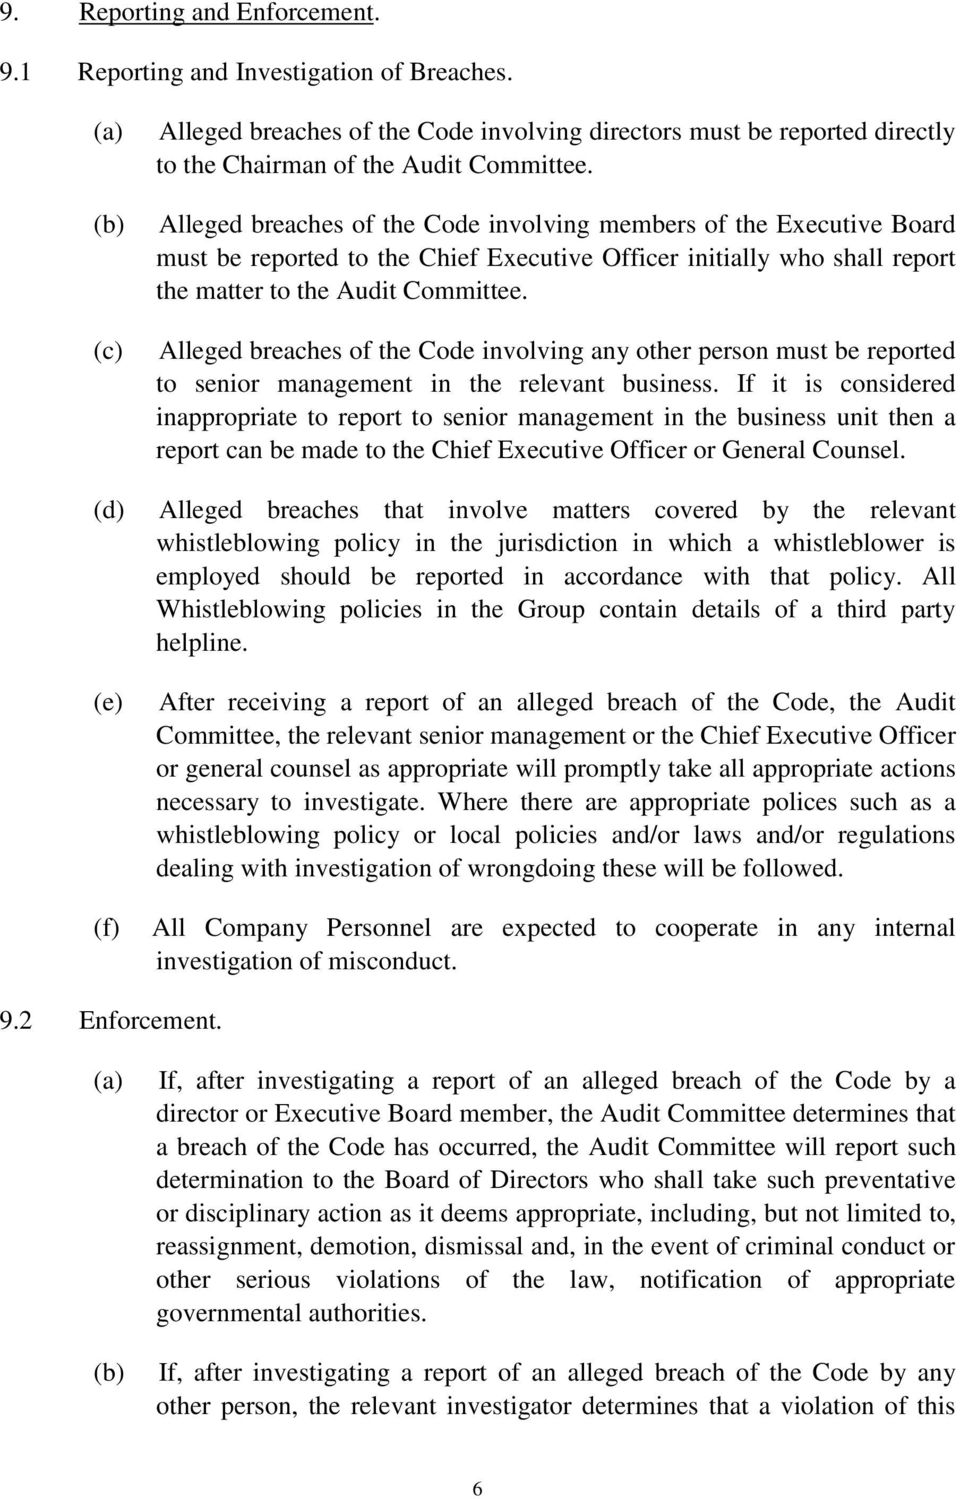 Alleged breaches of the Code involving members of the Executive Board must be reported to the Chief Executive Officer initially who shall report the matter to the Audit Committee.